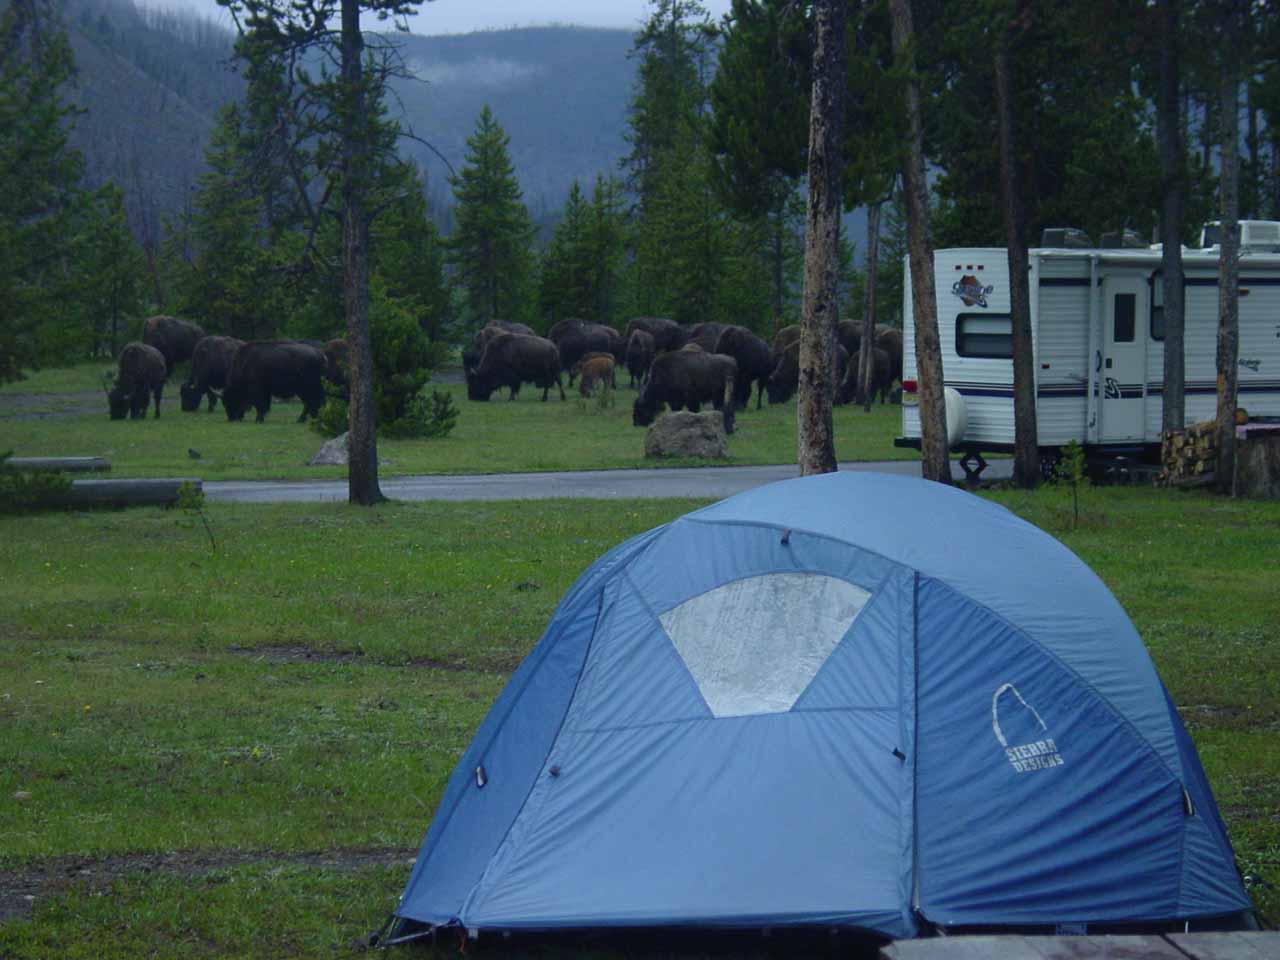 A herd of bison moving right into a neighbor's campsite